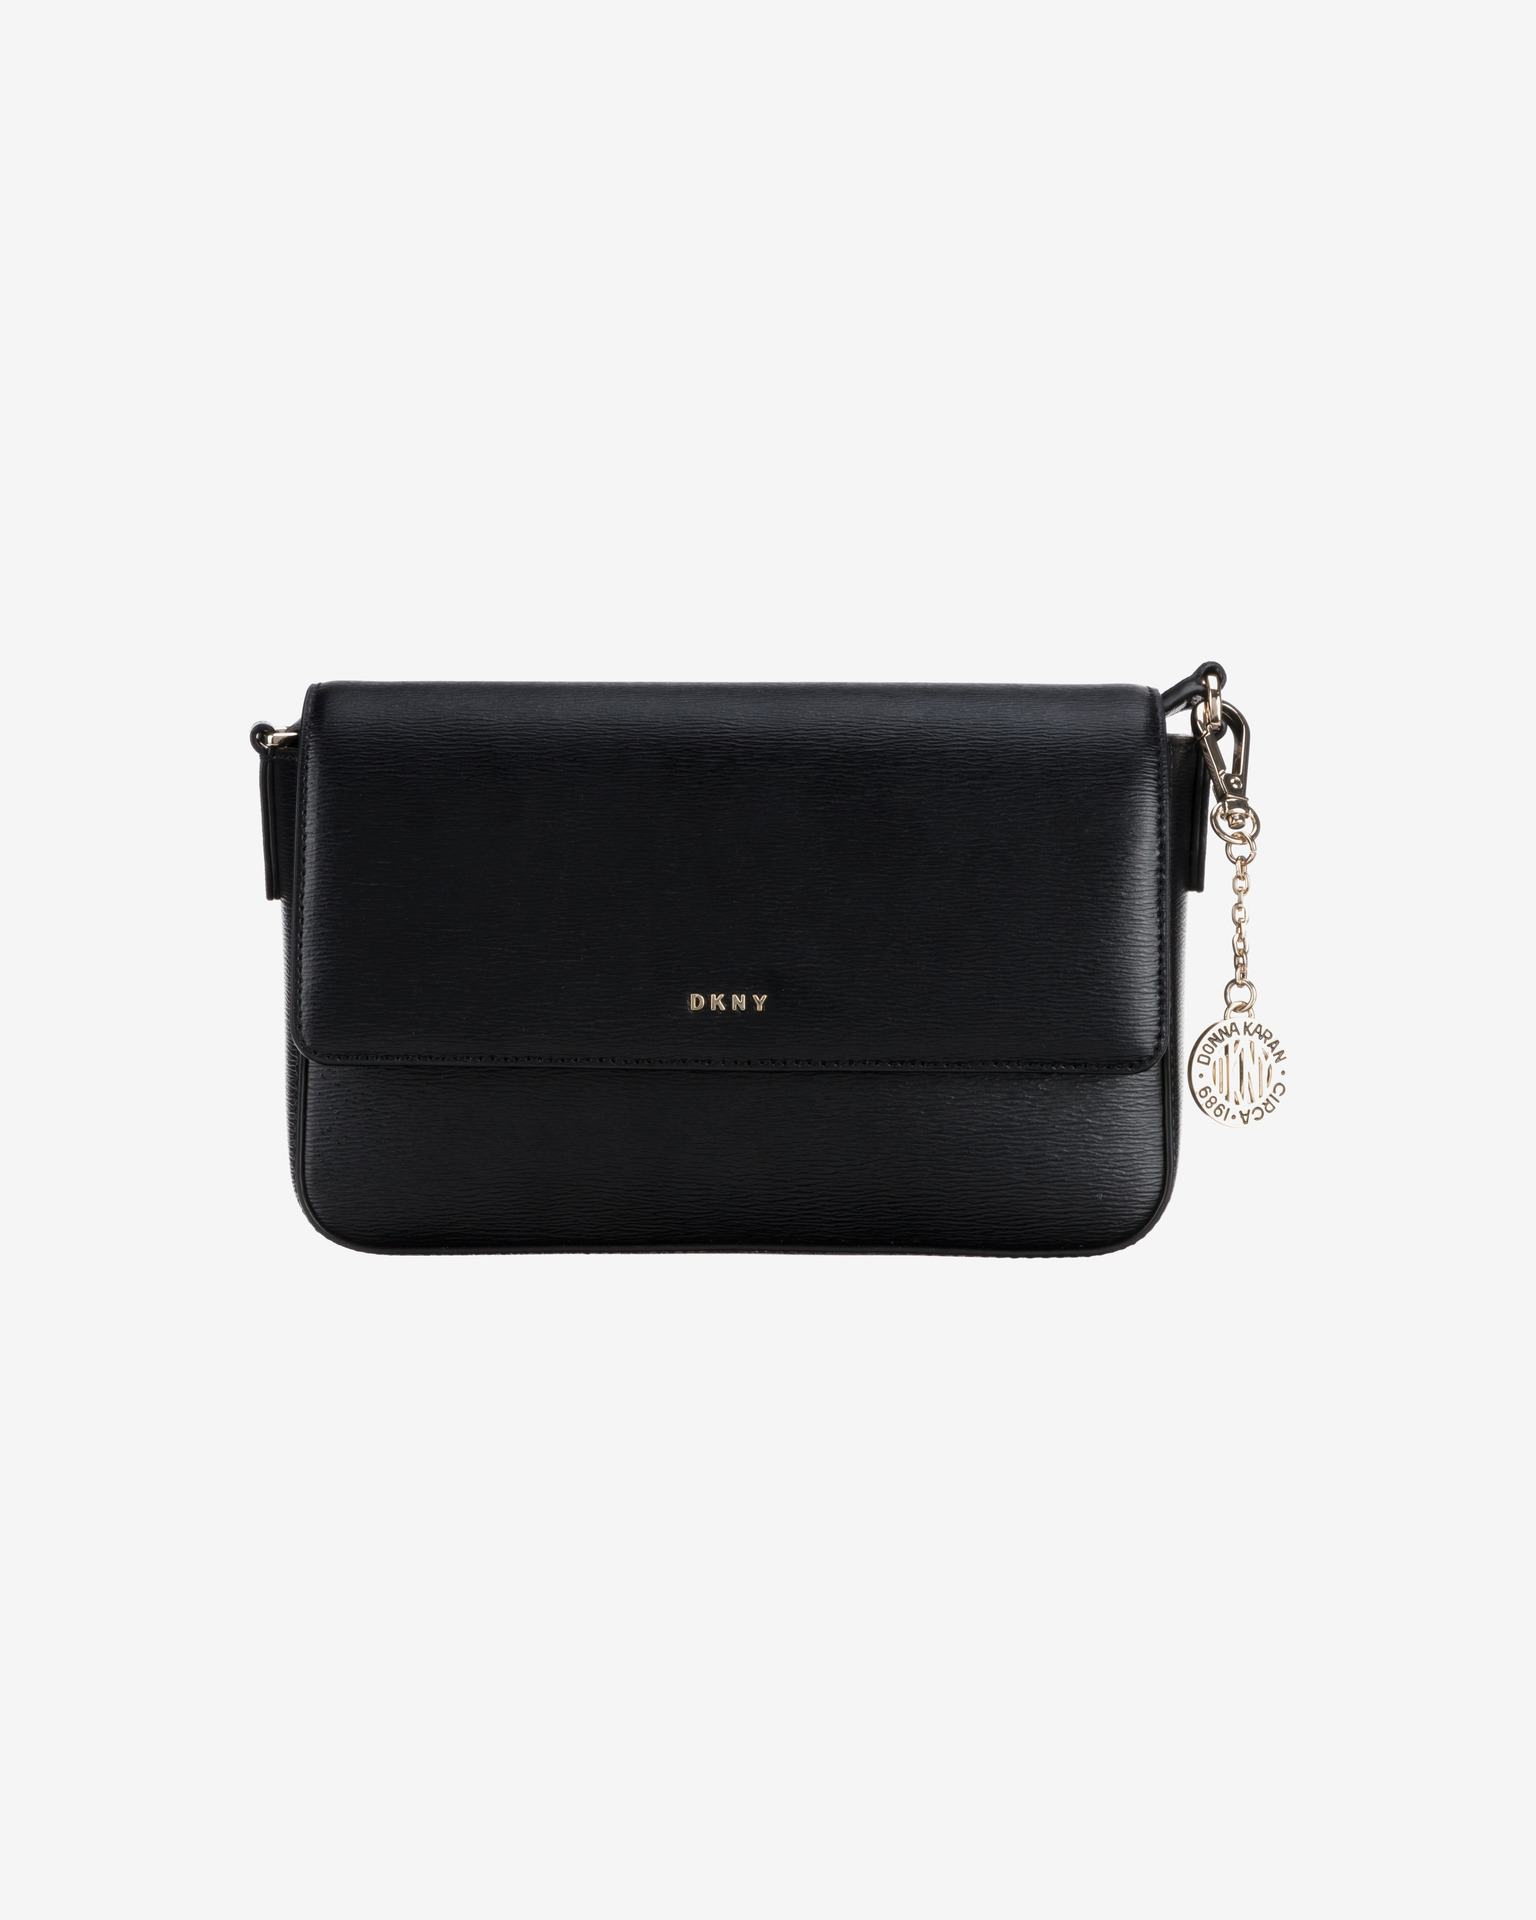 Bryant Medium Cross body bag DKNY